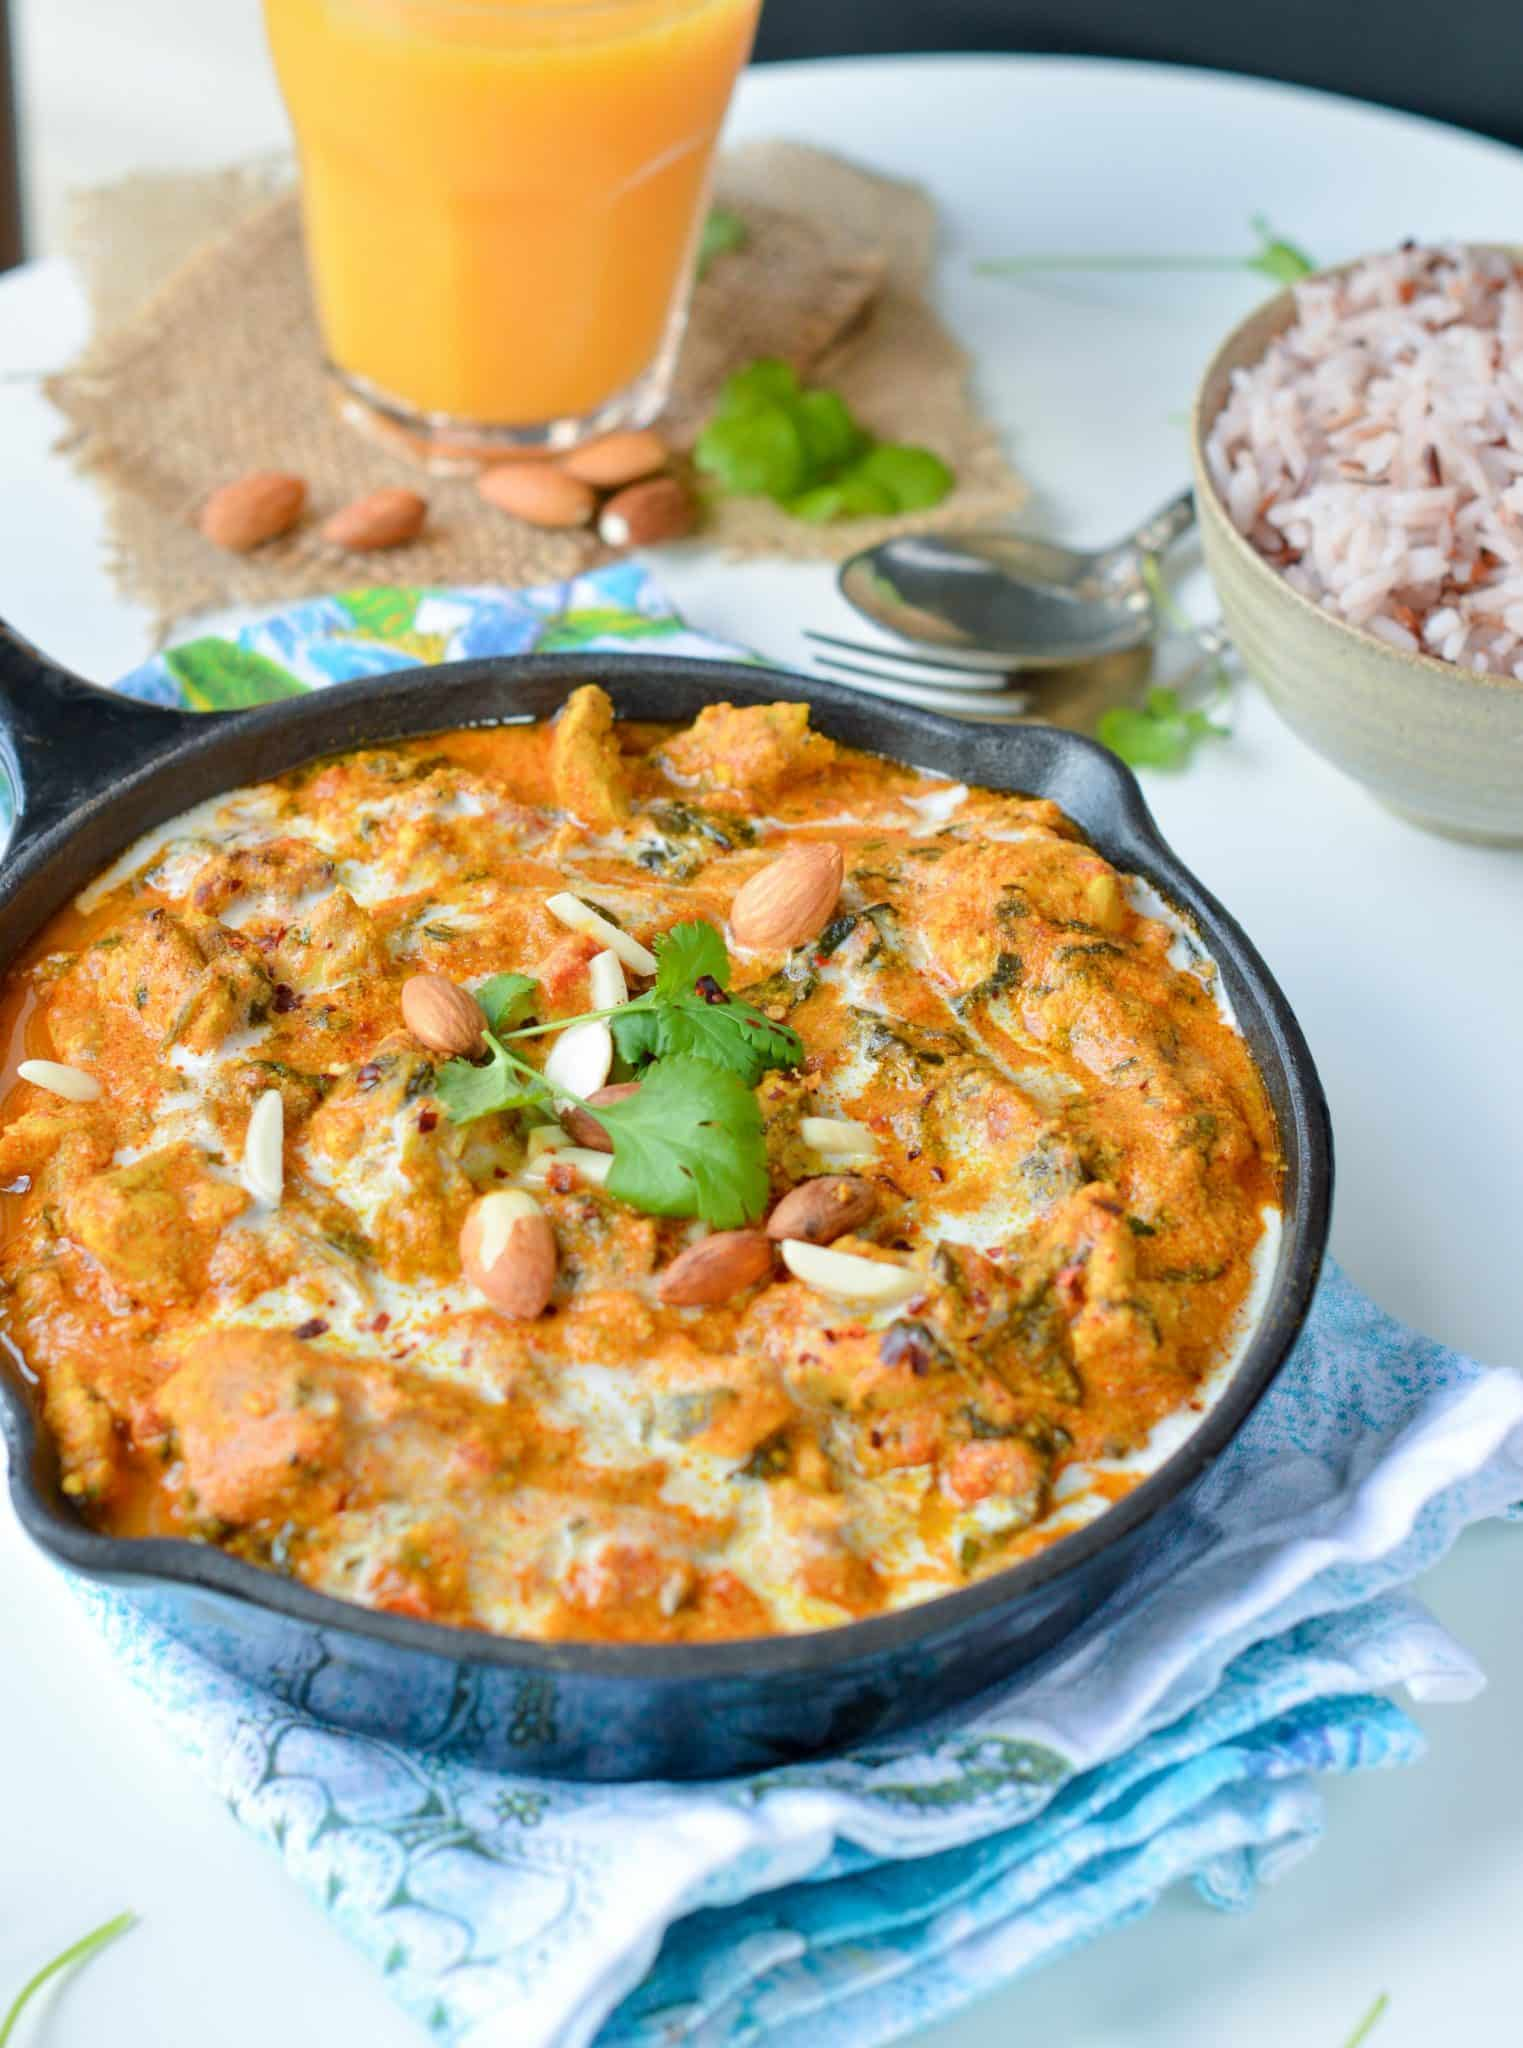 Healthy Chicken Tikka Masala, a delicious low carb comfort foods recipe with delicious indian spices. Make it vegan, swap the chicken by tofu.